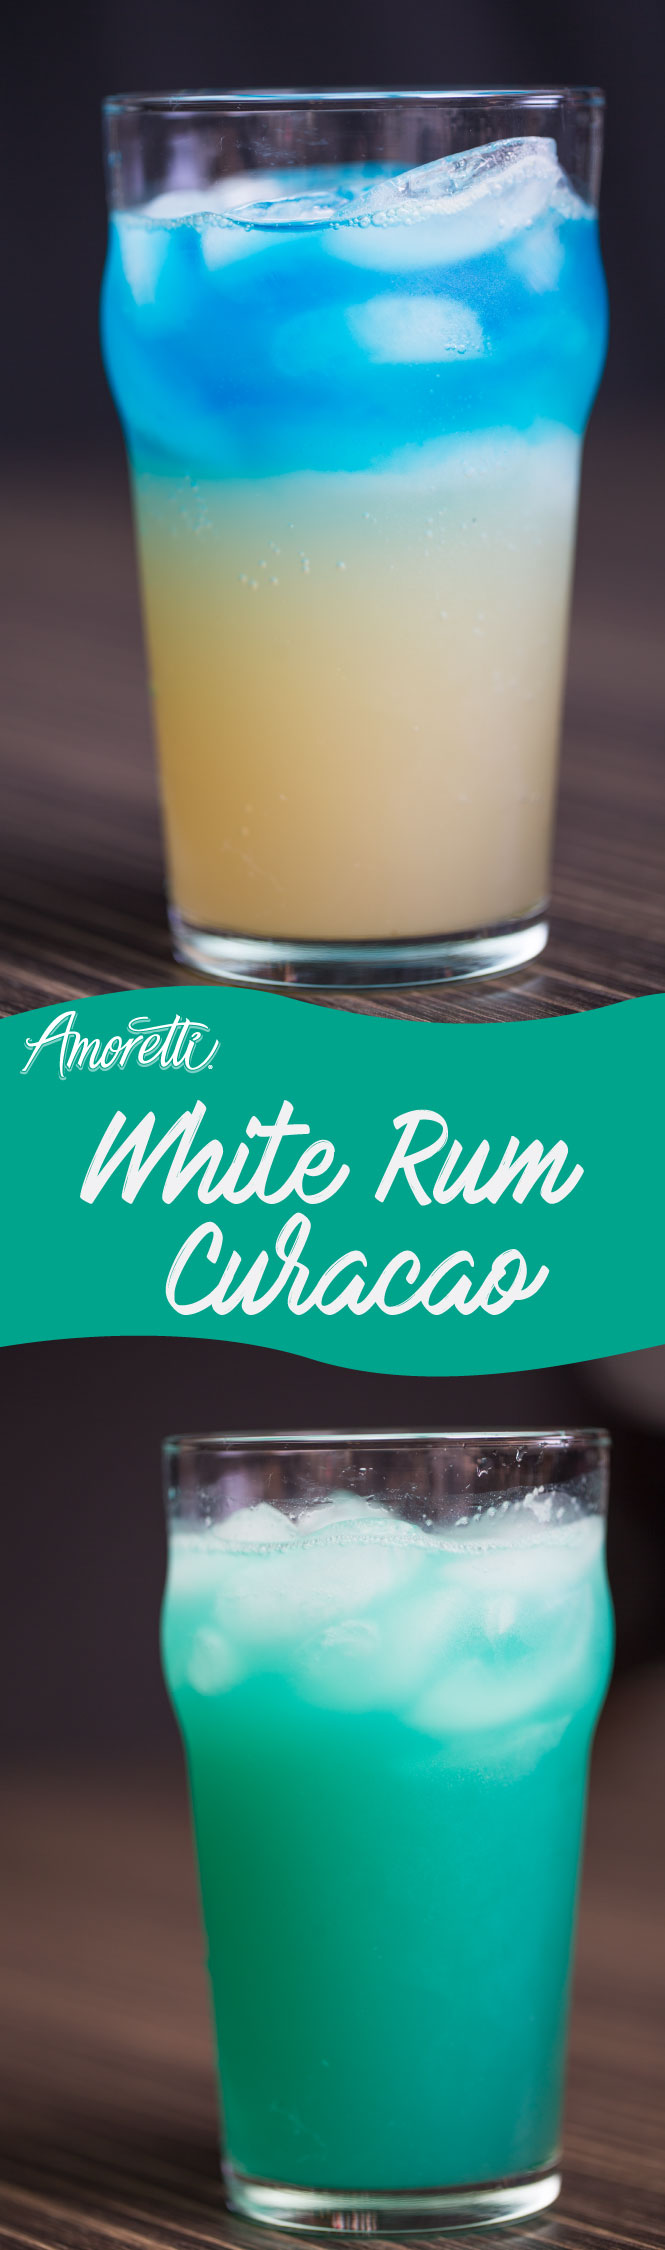 For a cocktail that looks and tastes amazing, try our White Rum Curacao!